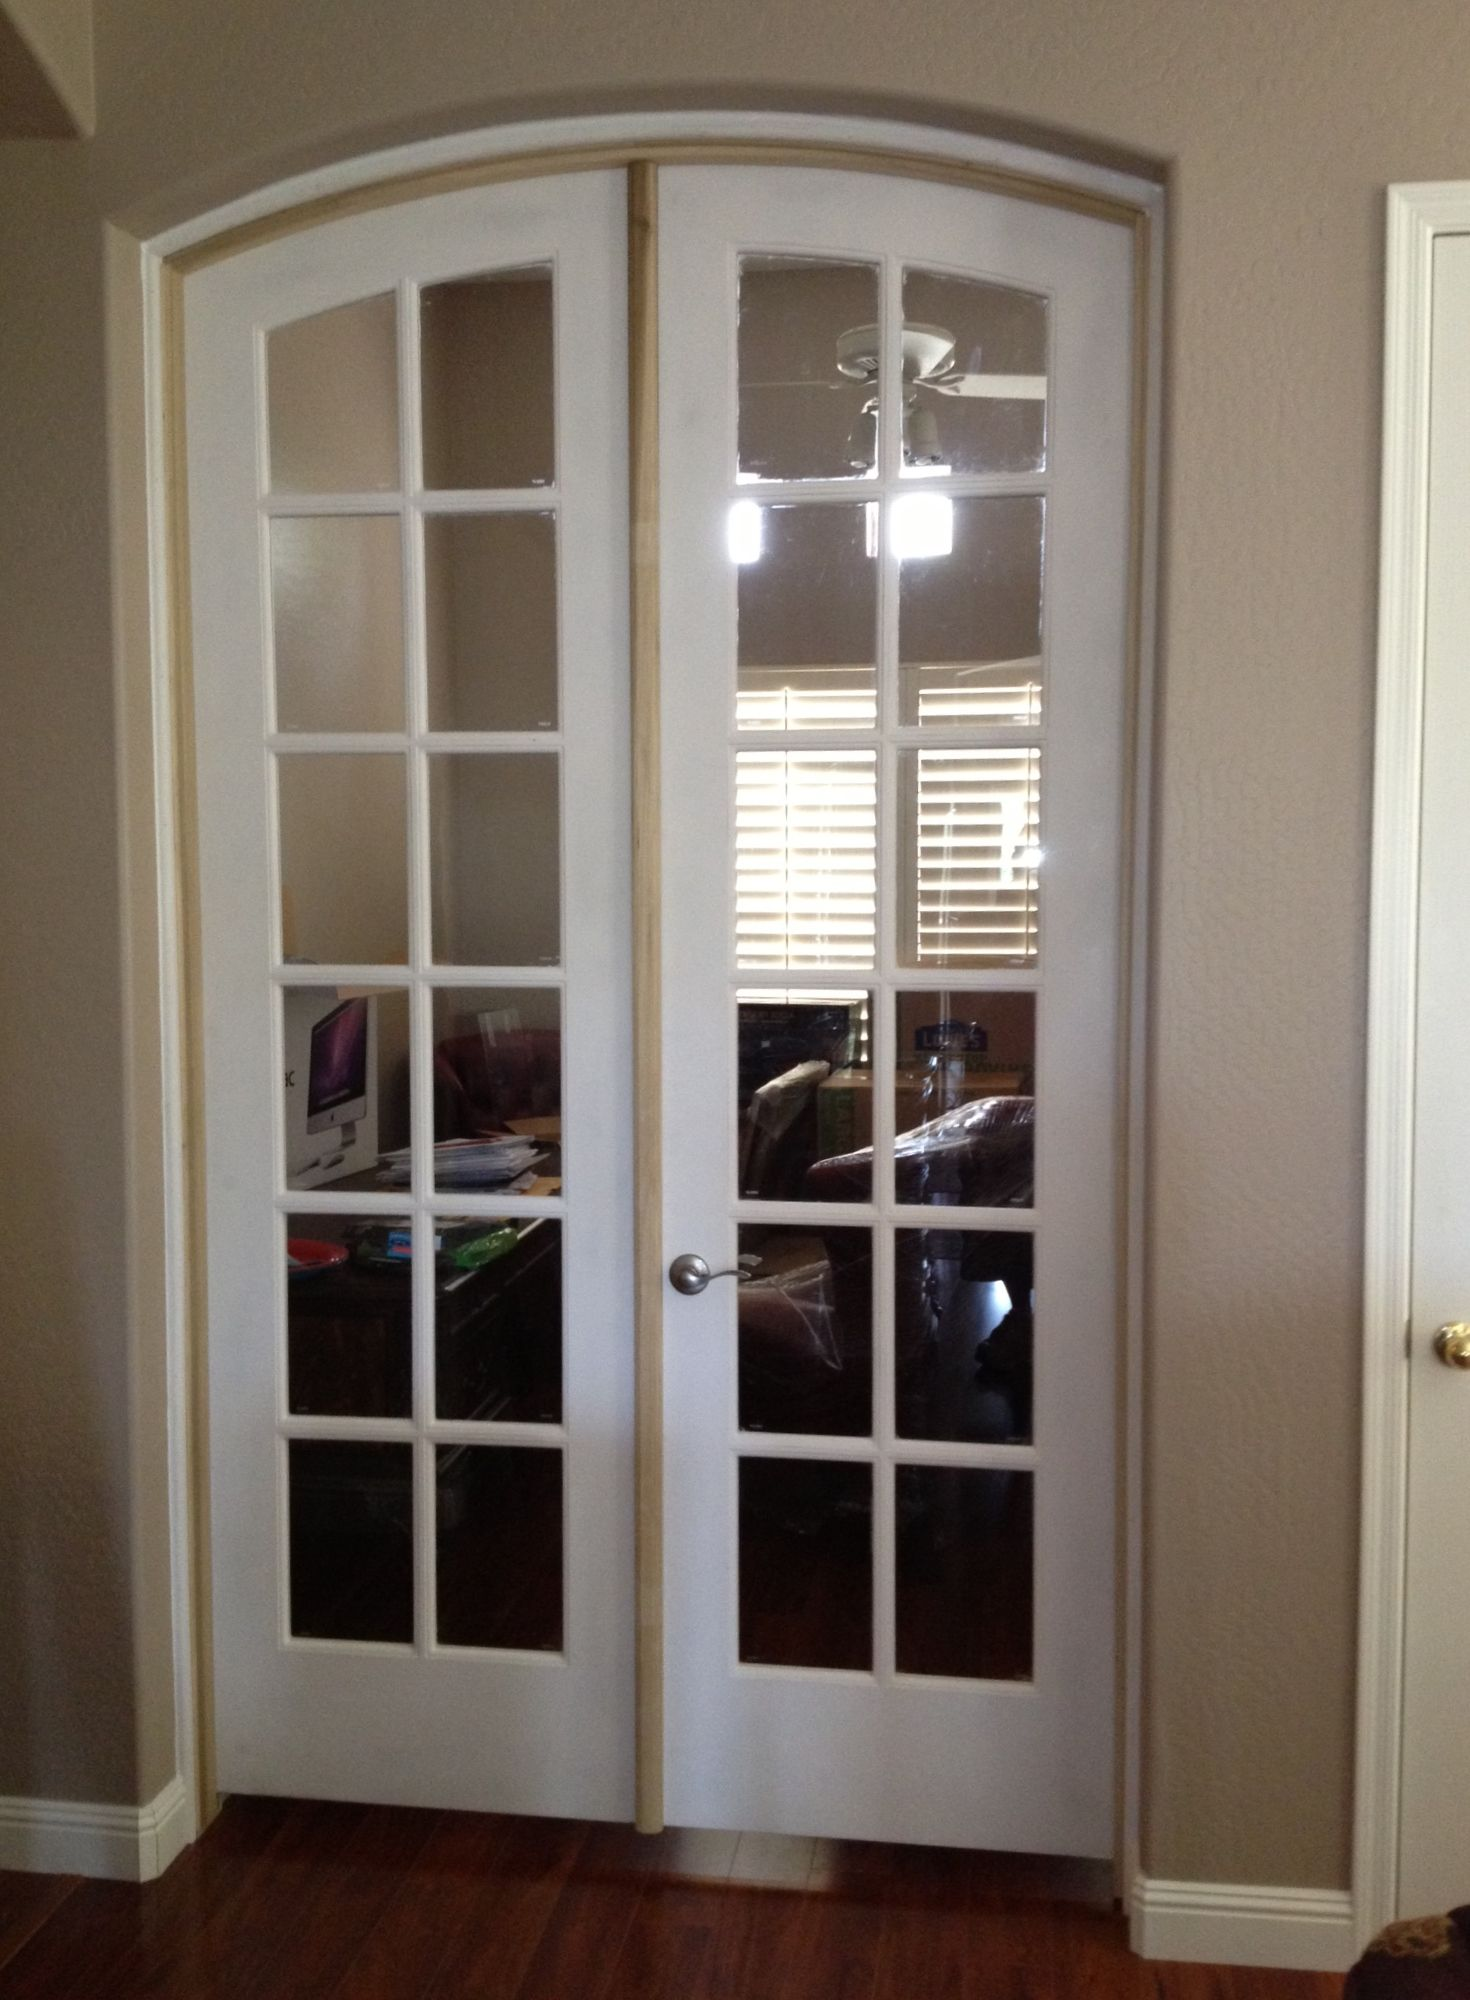 8 Foot Doors Interior Google Search French Doors Interior Double Doors Interior Door Hardware Interior